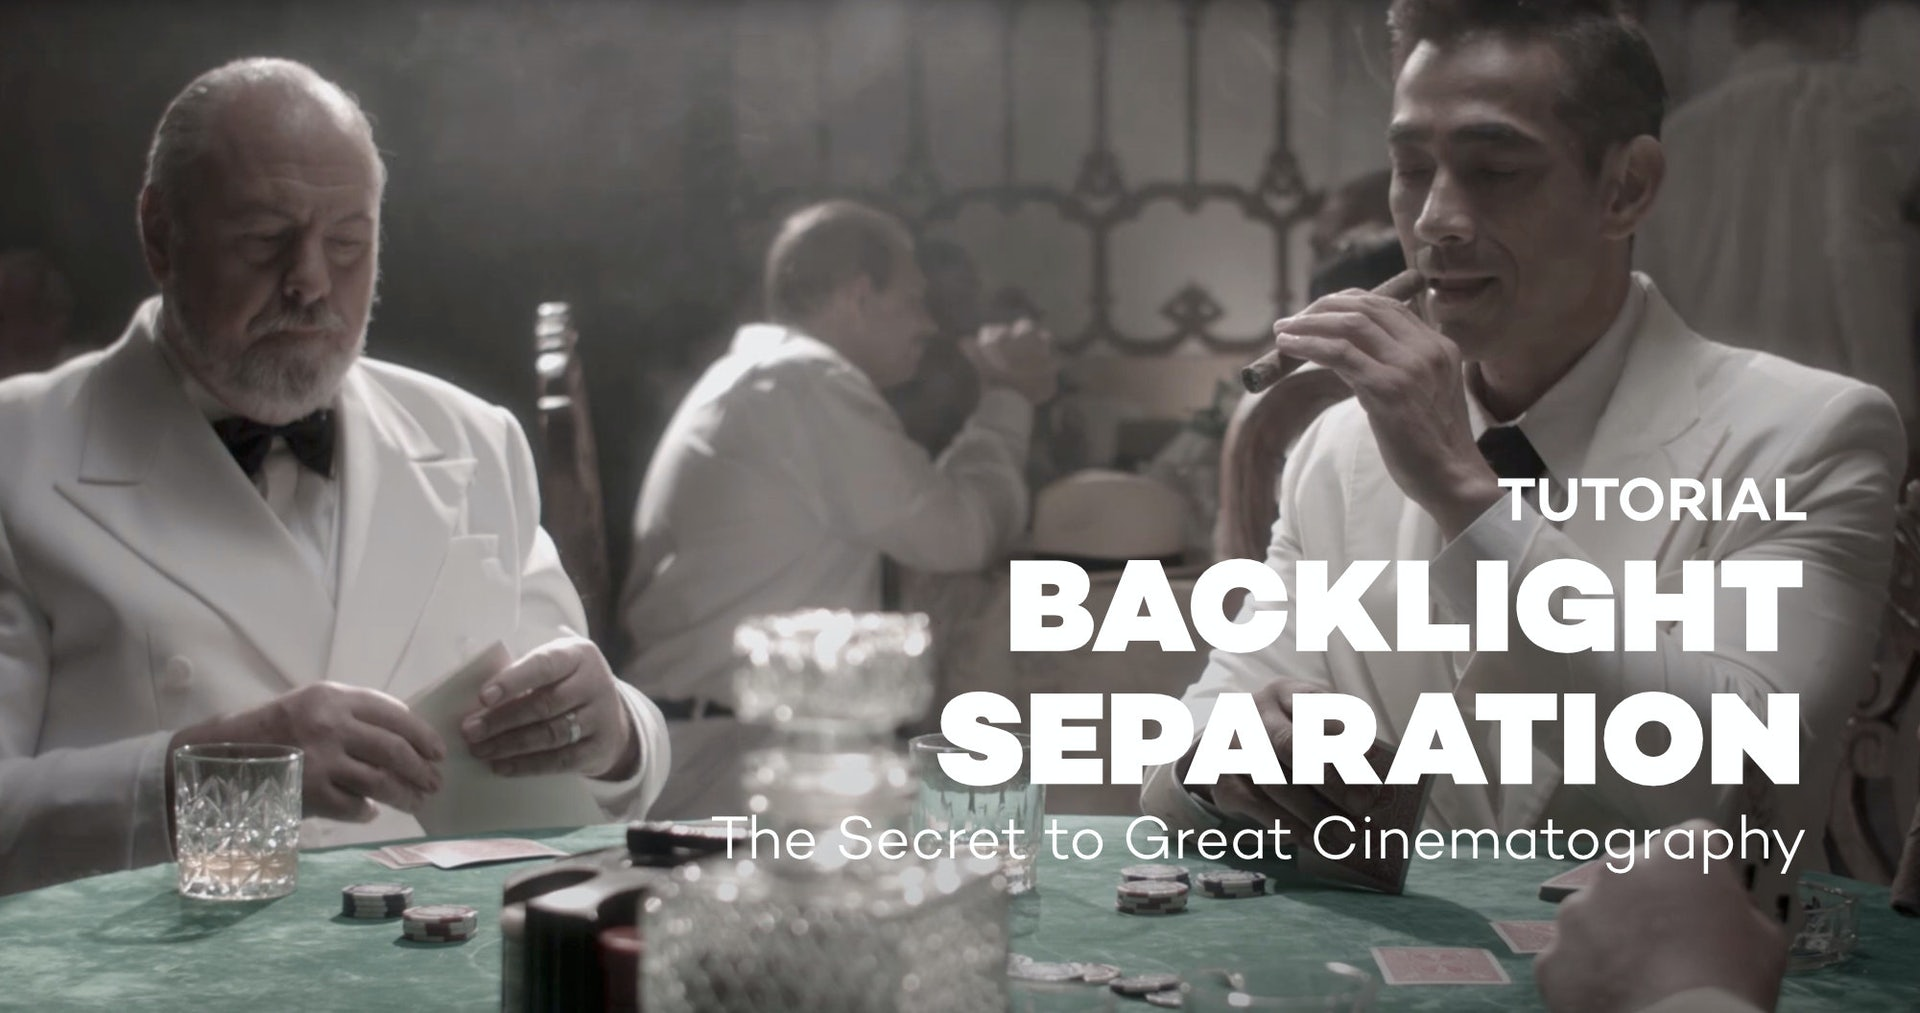 Backlight Separation - The Secret to Great Cinematography